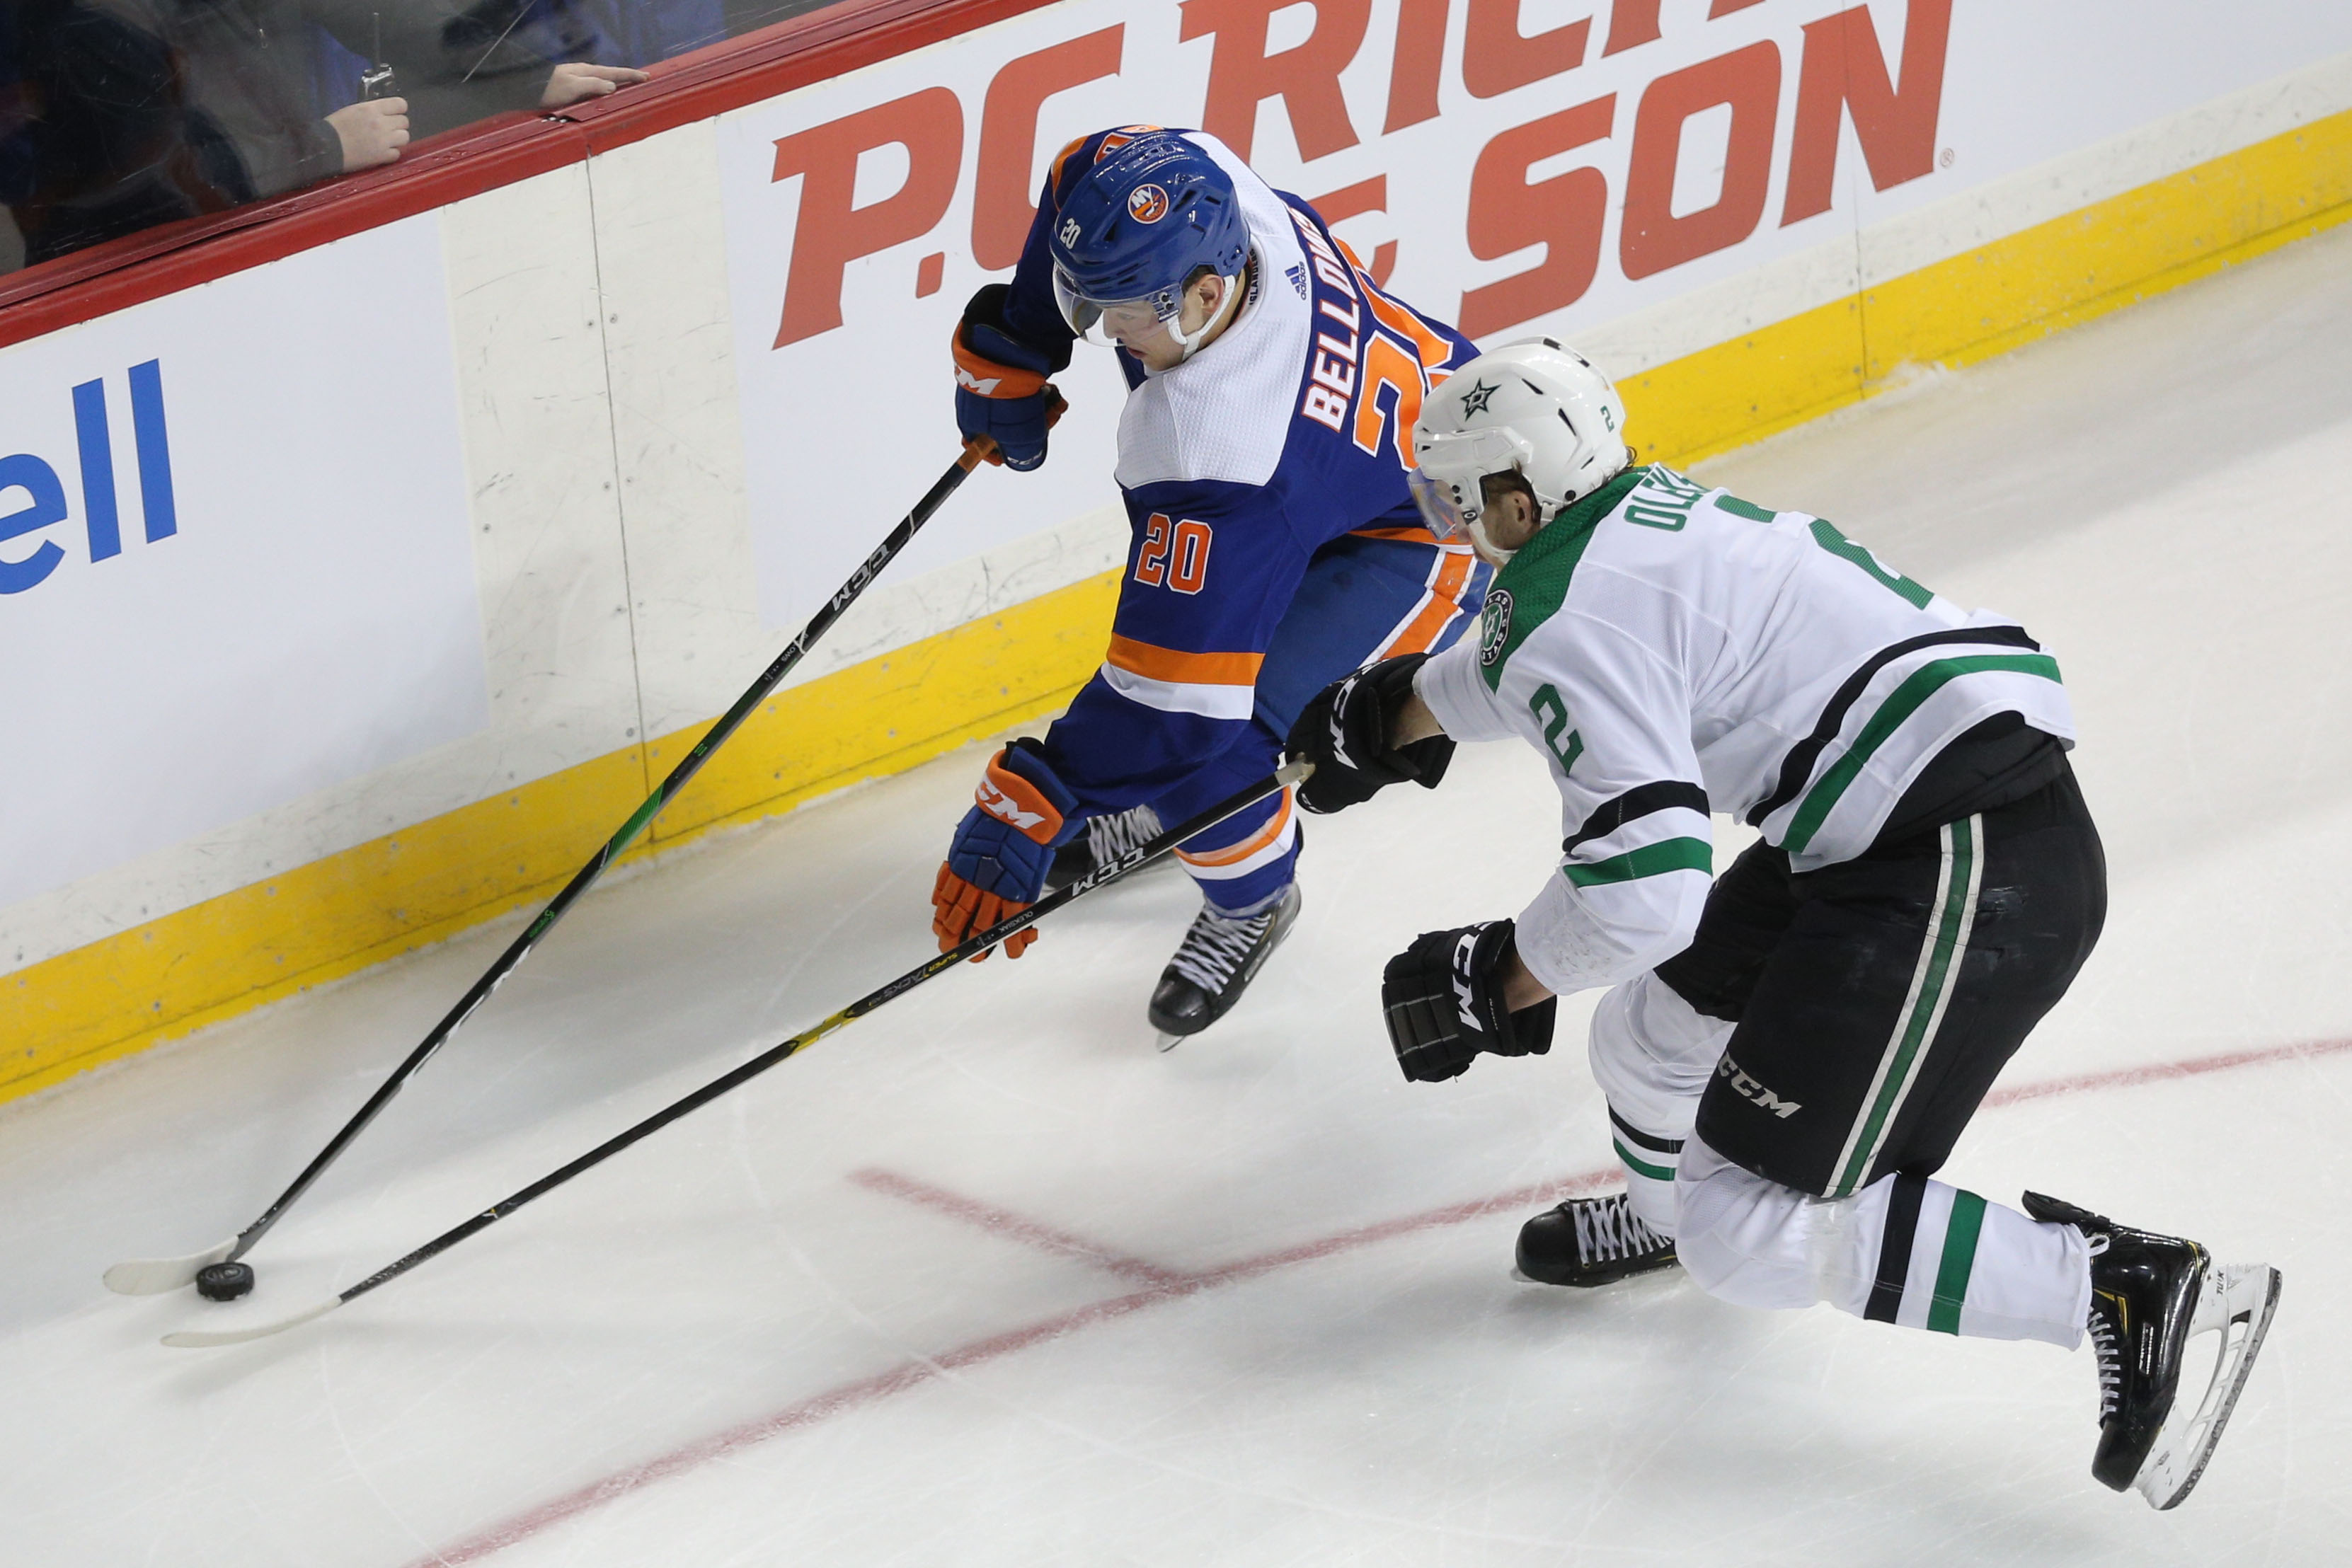 Feb 4, 2020; Brooklyn, New York, USA; New York Islanders left wing Kieffer Bellows (20) plays the puck against Dallas Stars defenseman Jamie Oleksiak (2) during the second period at Barclays Center. Mandatory Credit: Brad Penner-USA TODAY Sports